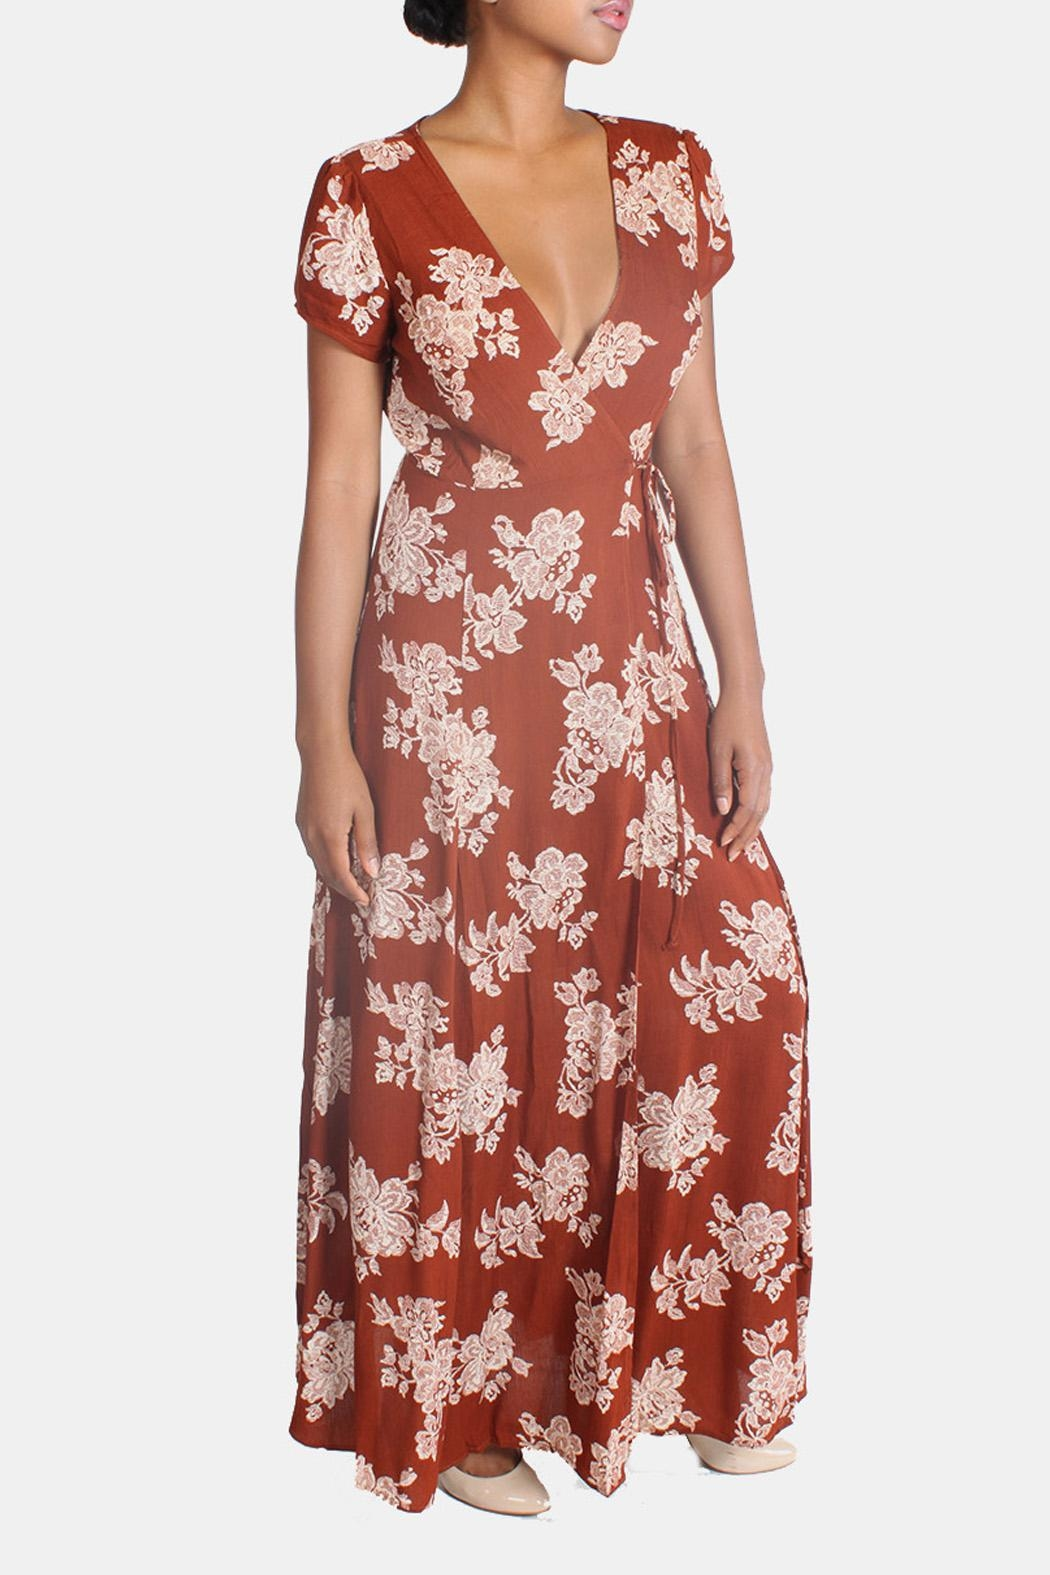 Rokoko Floral Wrap Dress From Los Angeles By Goldie S